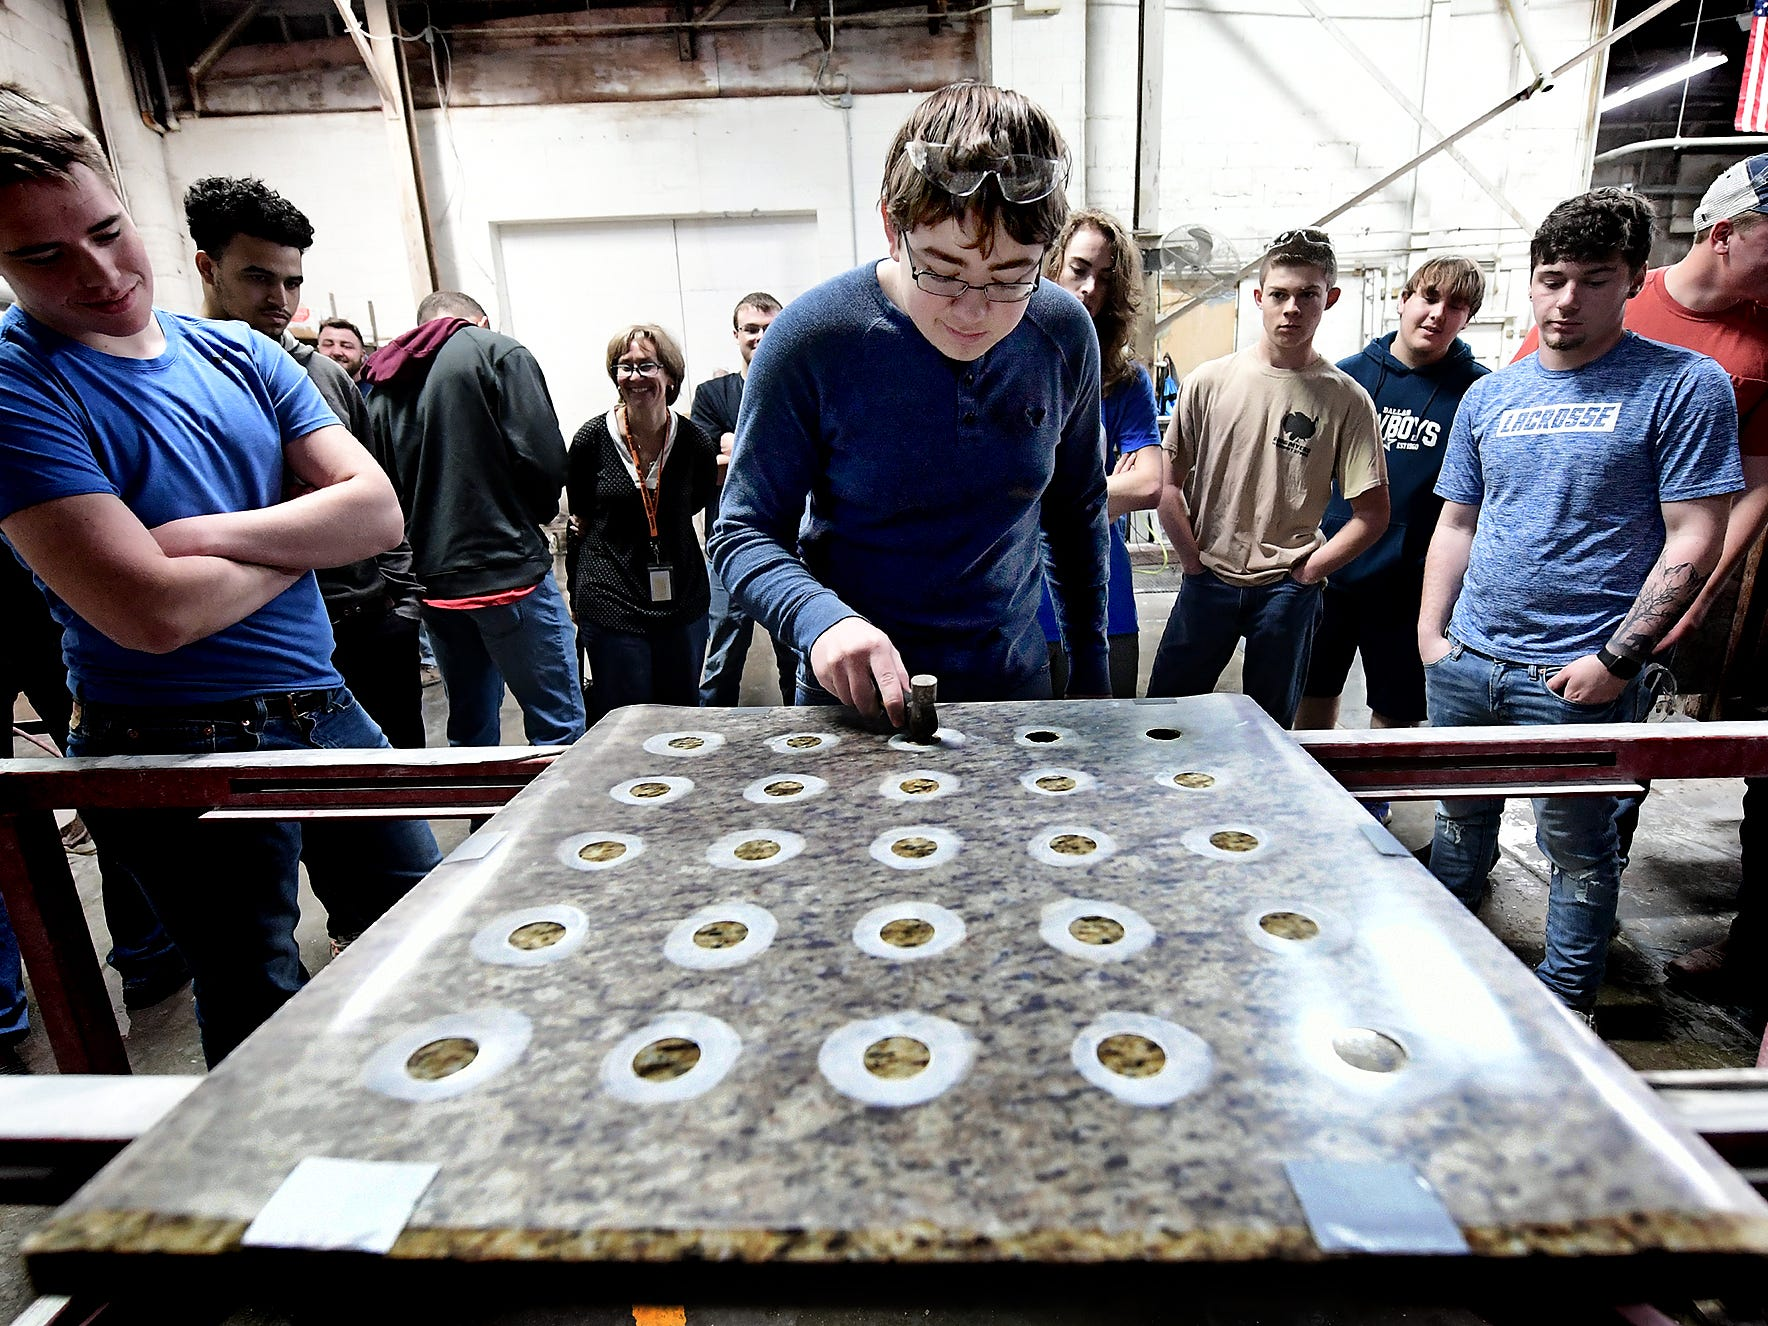 York Suburban High School junior Drew Davis punches a spigot hole in a granite slab at Frank's Marble & Granite, in Red Lion, during the York Builders Association 2nd Annual Construction Career Day Monday, April 8, 2019. The goal of the program is to raise student-awareness about local career opportunities in the construction field. Association members host the students. The association has planned similar events at various companies through April 17. Nine area high schools are participating in the program, according to the builders association. Bill Kalina photo